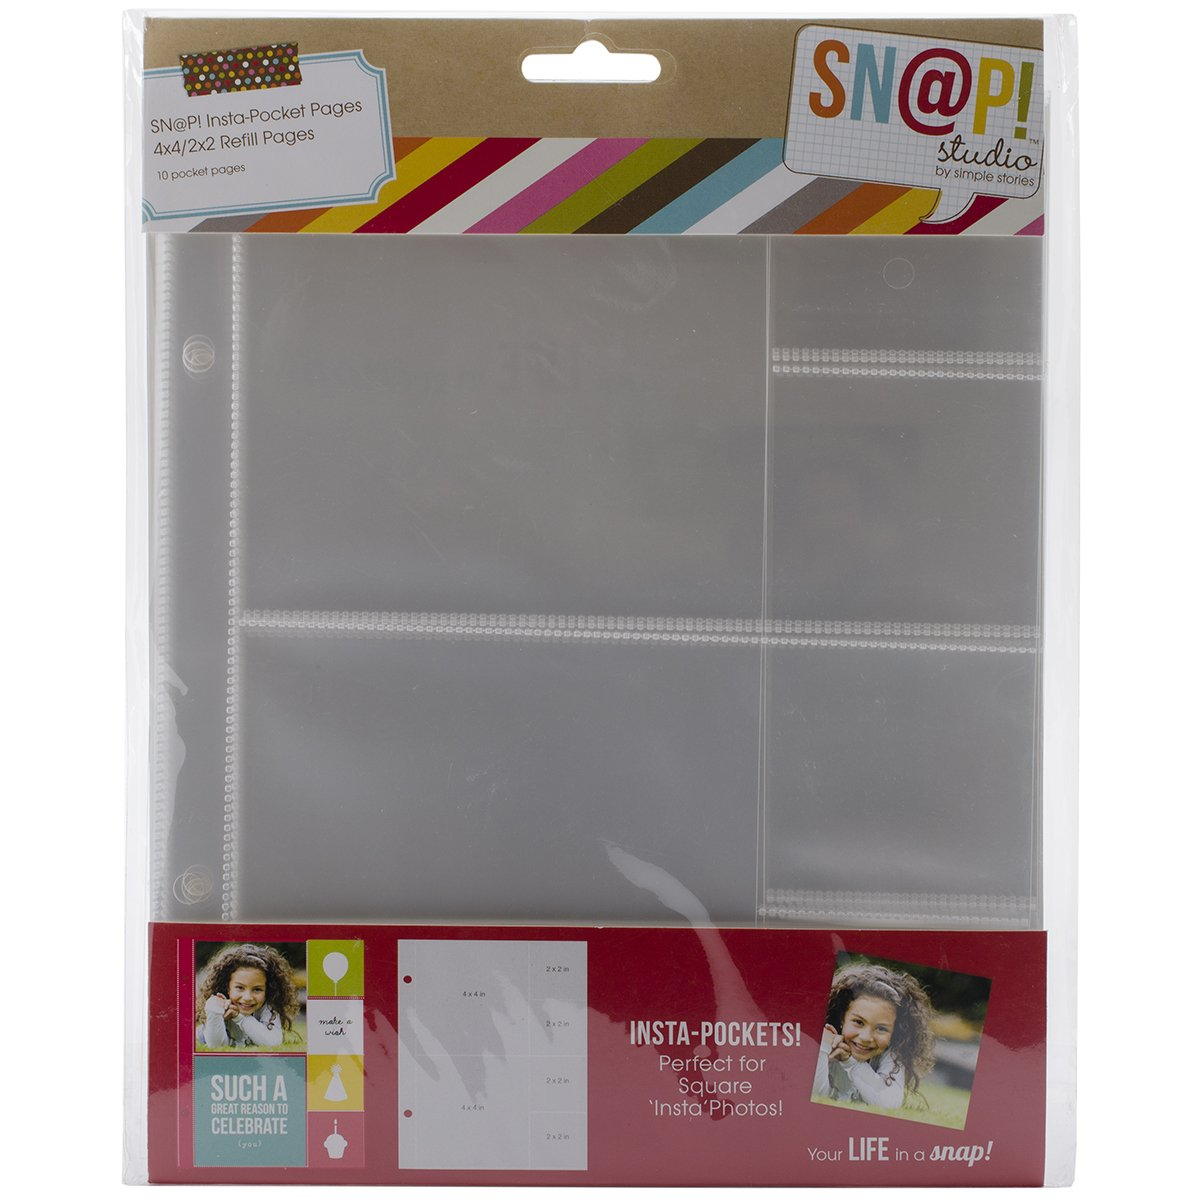 Simple Stories Snatp! Insta Pocket Pages for 6 by 8-Inch Binders with 4 by 4-Inch and 2 by 2-Inch Pockets, 10-Pack SNAP4073